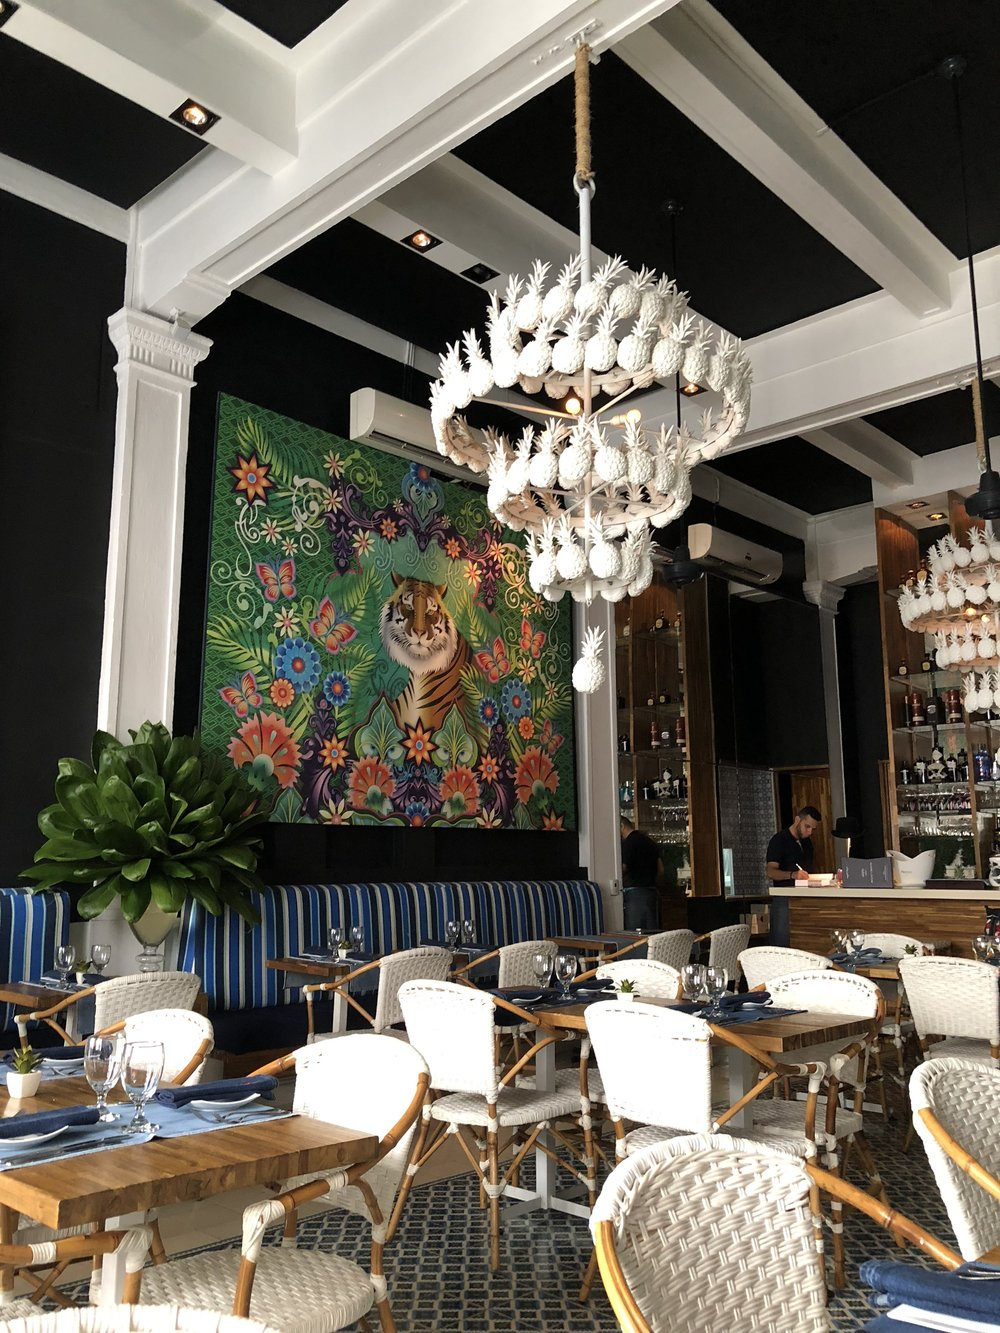 Maria - Colorful, elegant, and most importantly absolutely mouth-watering, the dishes at Maria will not disappoint. Designed by Maria Pinto, the stunning pineapple chandelier stands out against the mural of a tiger and sets the stage for woven white chairs that scream tropical chic.